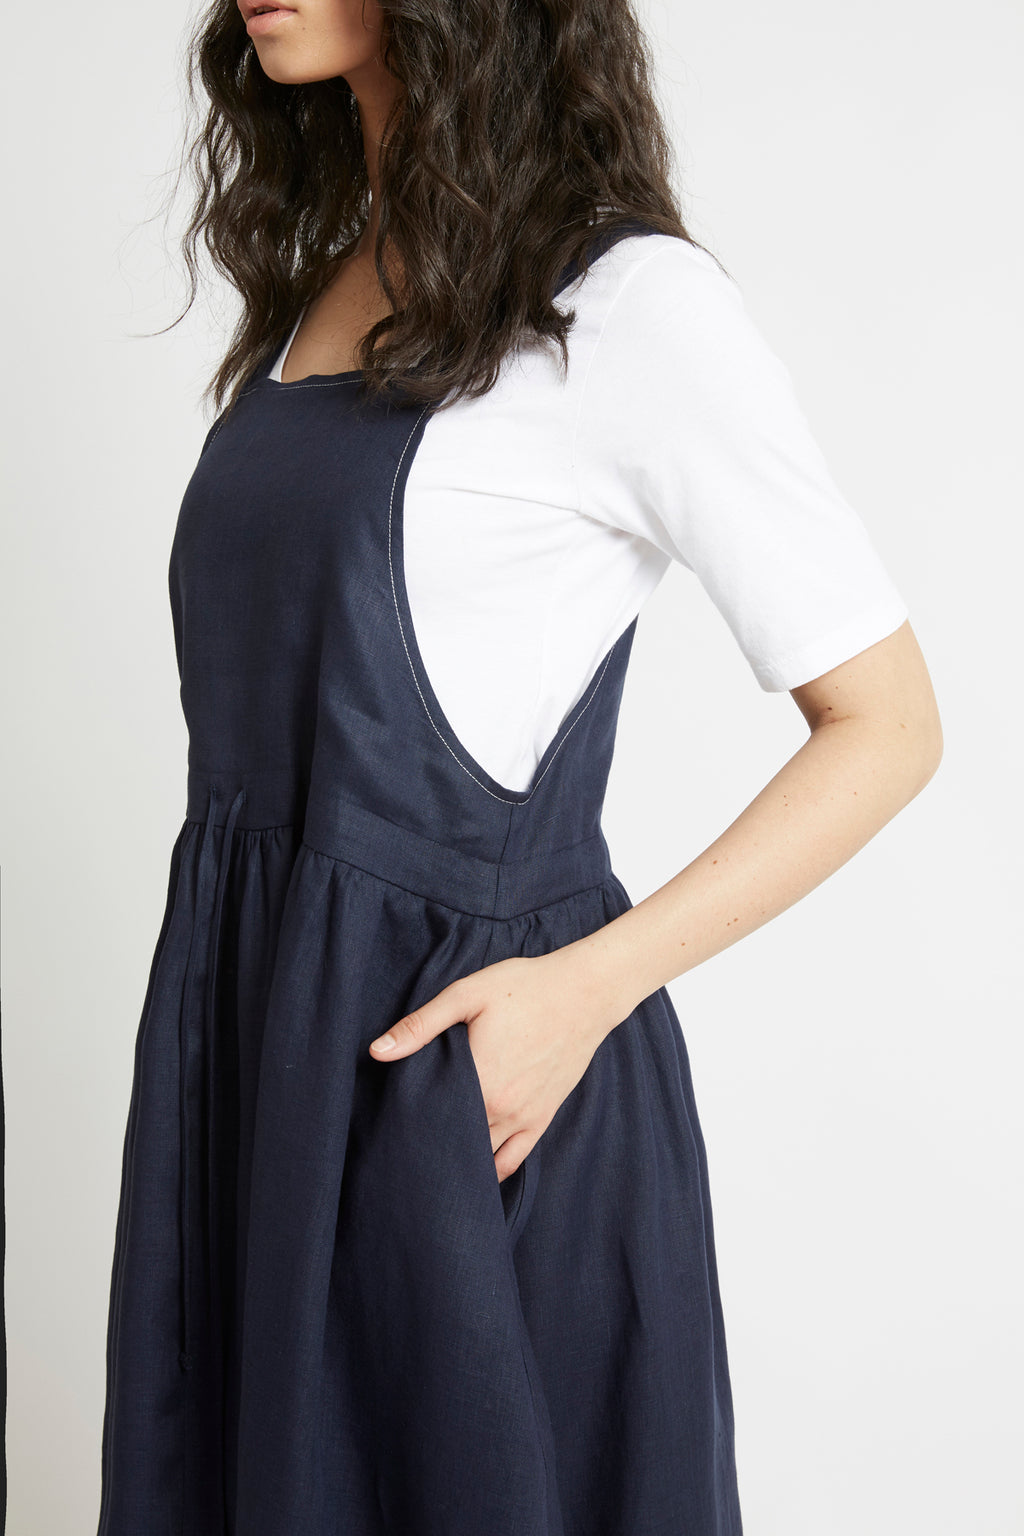 Navy Linen Drawstring Pinafore Dresses The Fashion Advocate ethical Australian fashion designer boutique Melbourne sustainable clothes